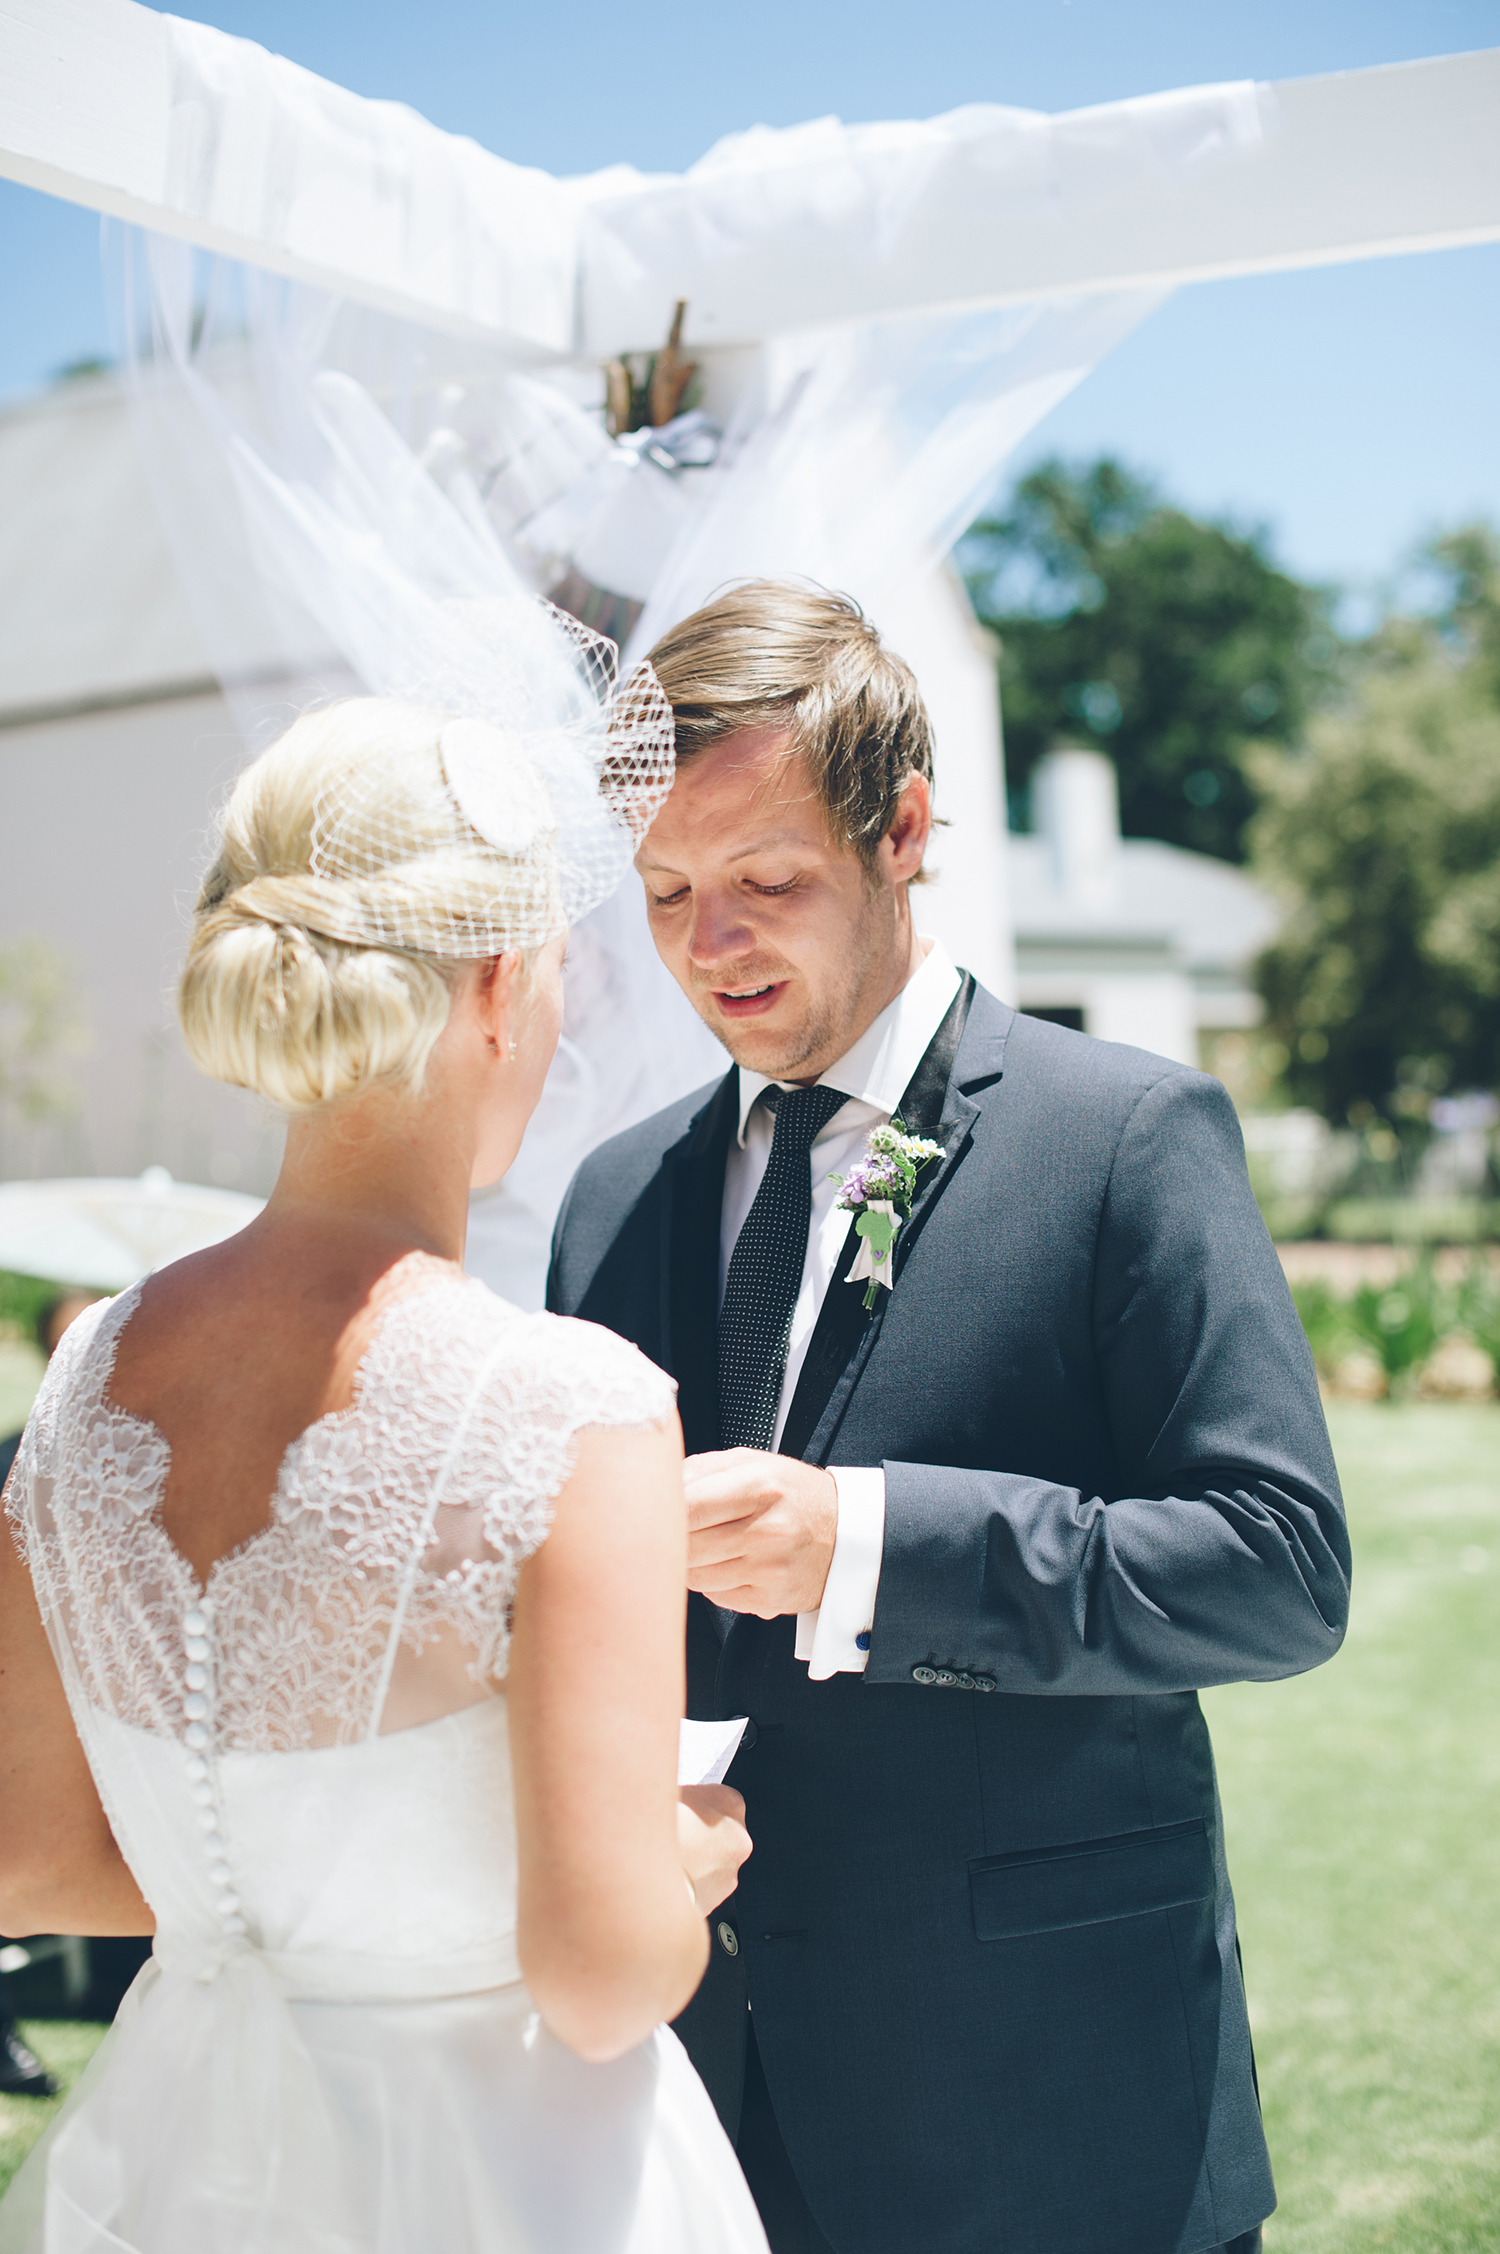 Alex & Daniela Destination Wedding Suedafrika von dna photographers | Verrueckt nach Hochzeit